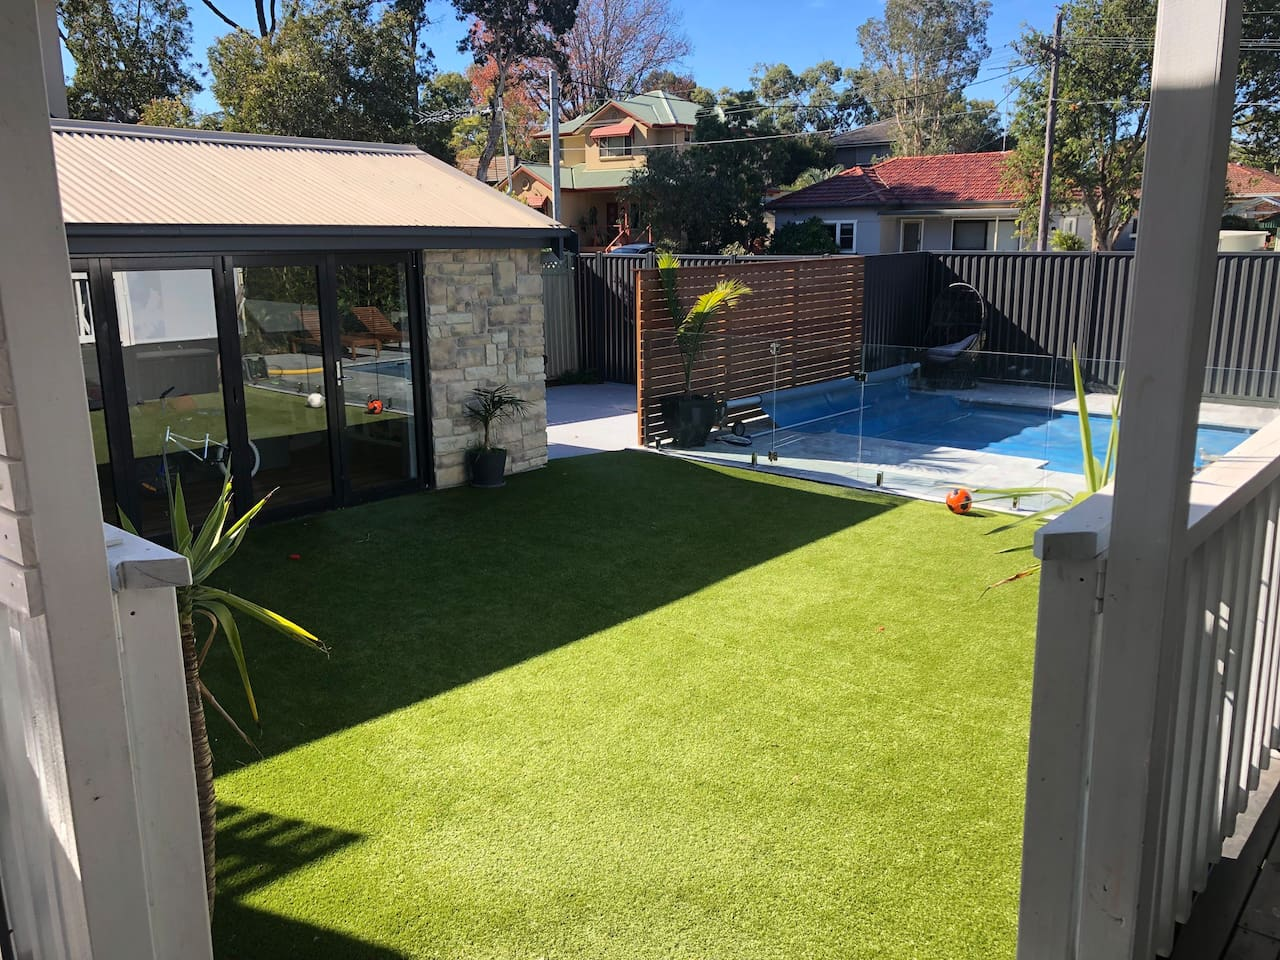 Garden with artificial lawn and kids play room and media room with sofa bed.